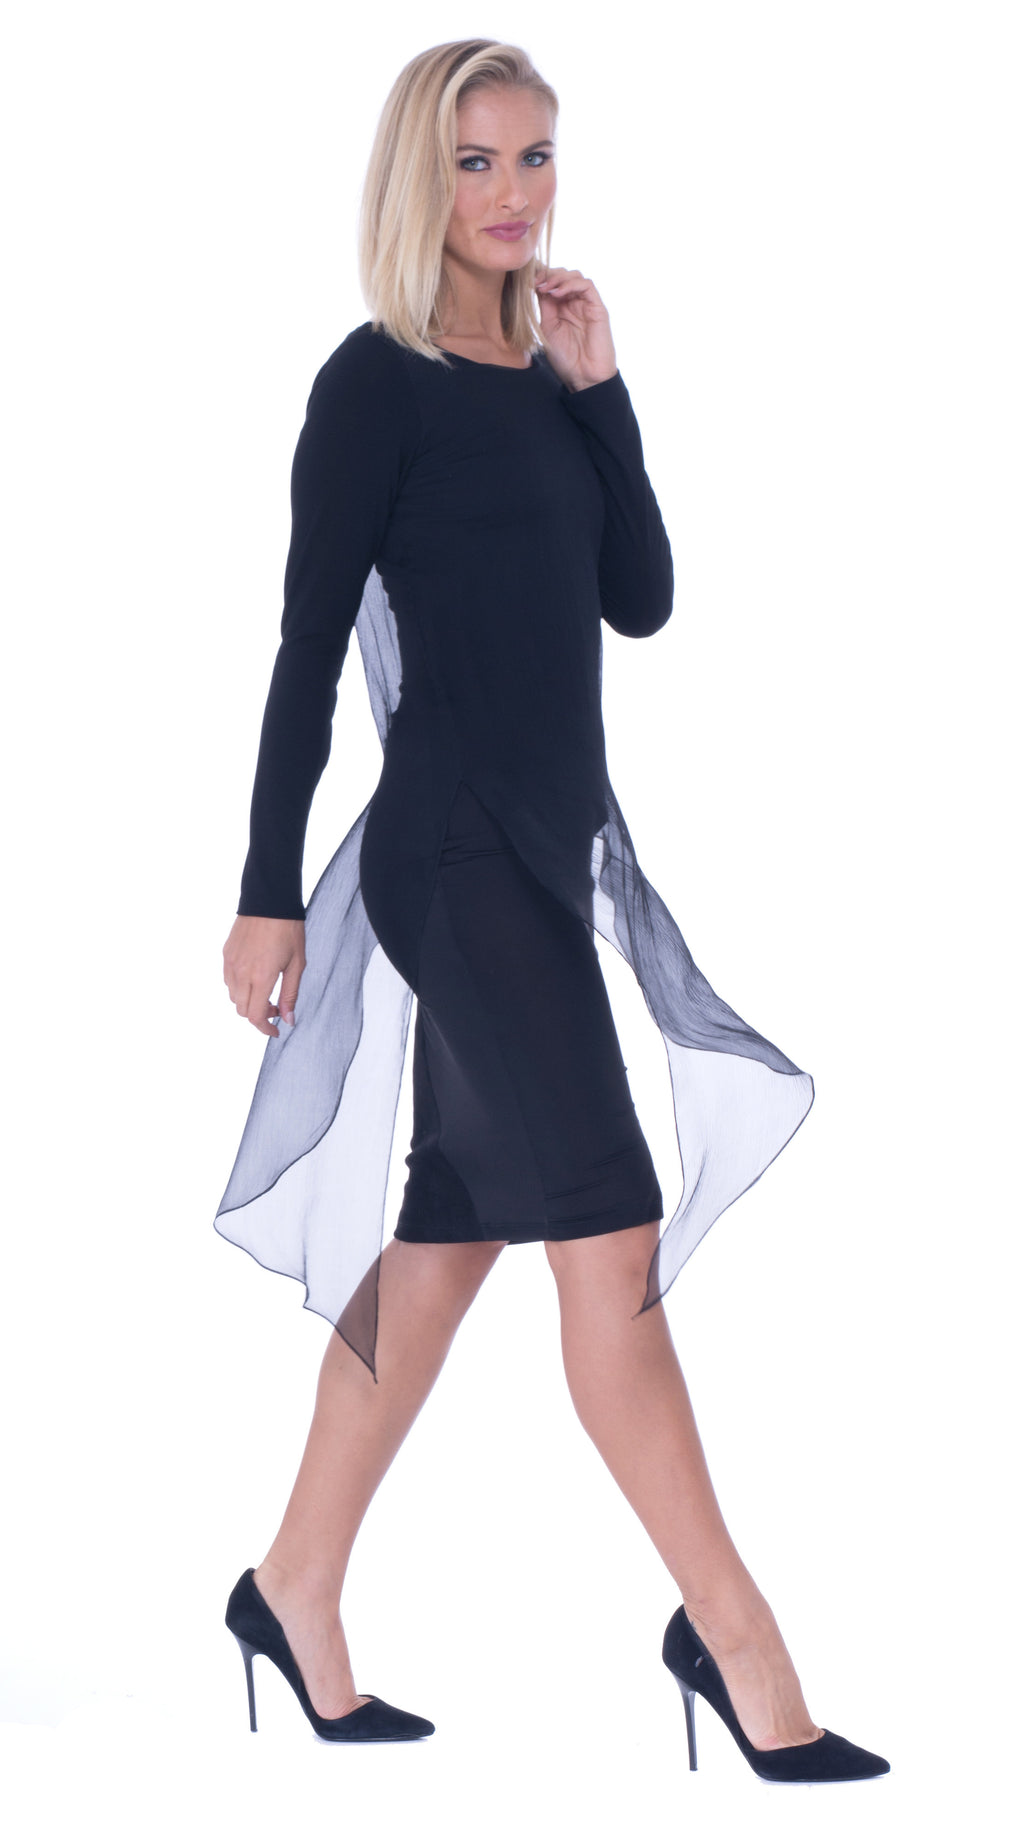 Ariel Over layered Boat Neck Dress